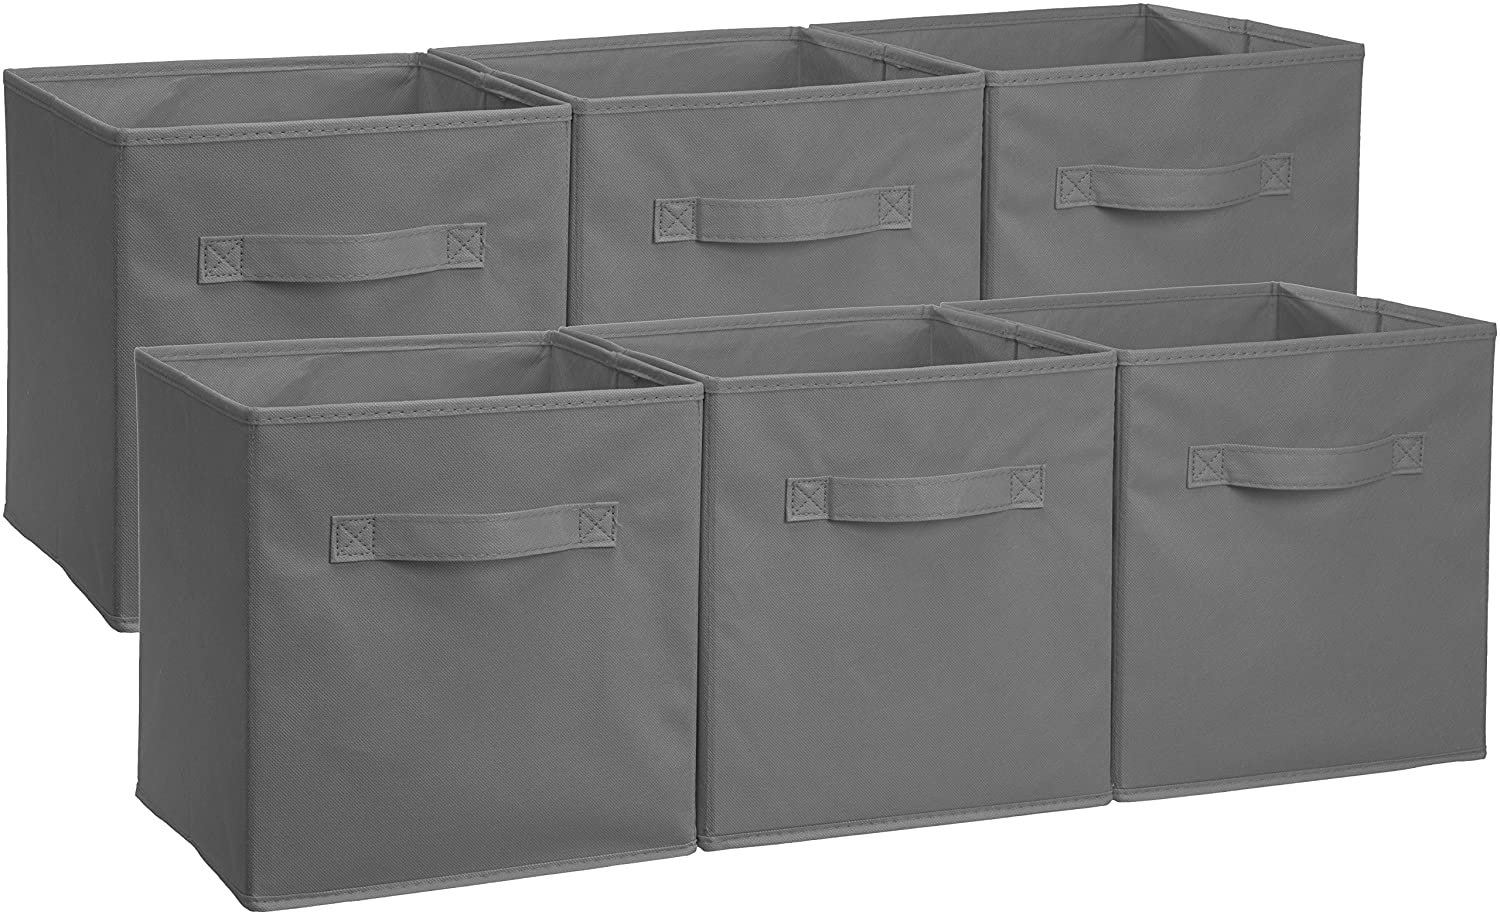 Foldable Storage Cubes - 6-Pack, Grey